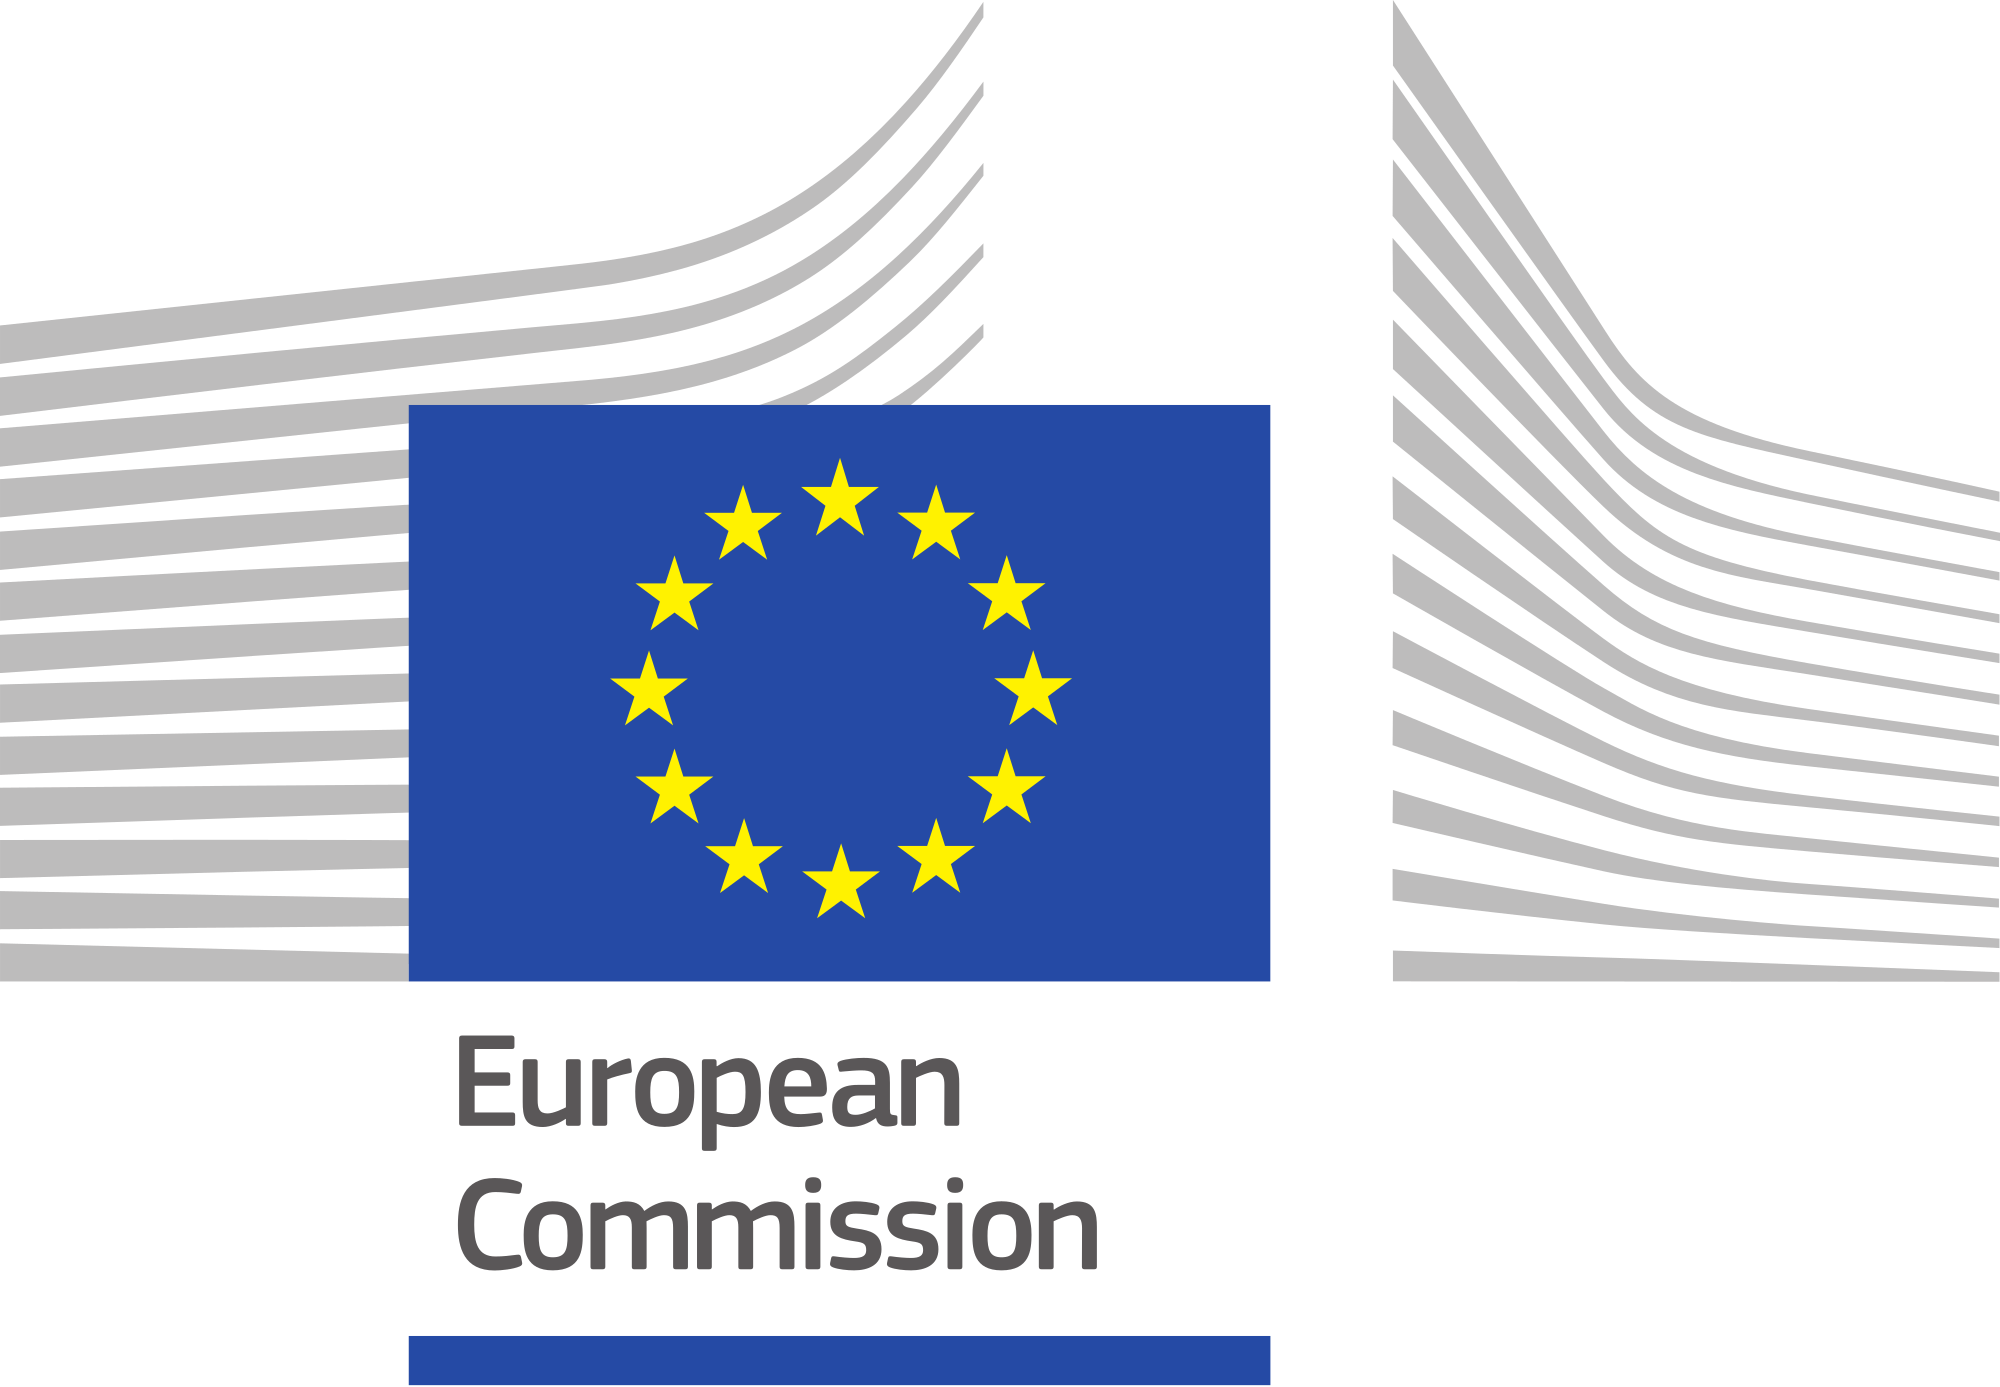 European Commission's Logo'